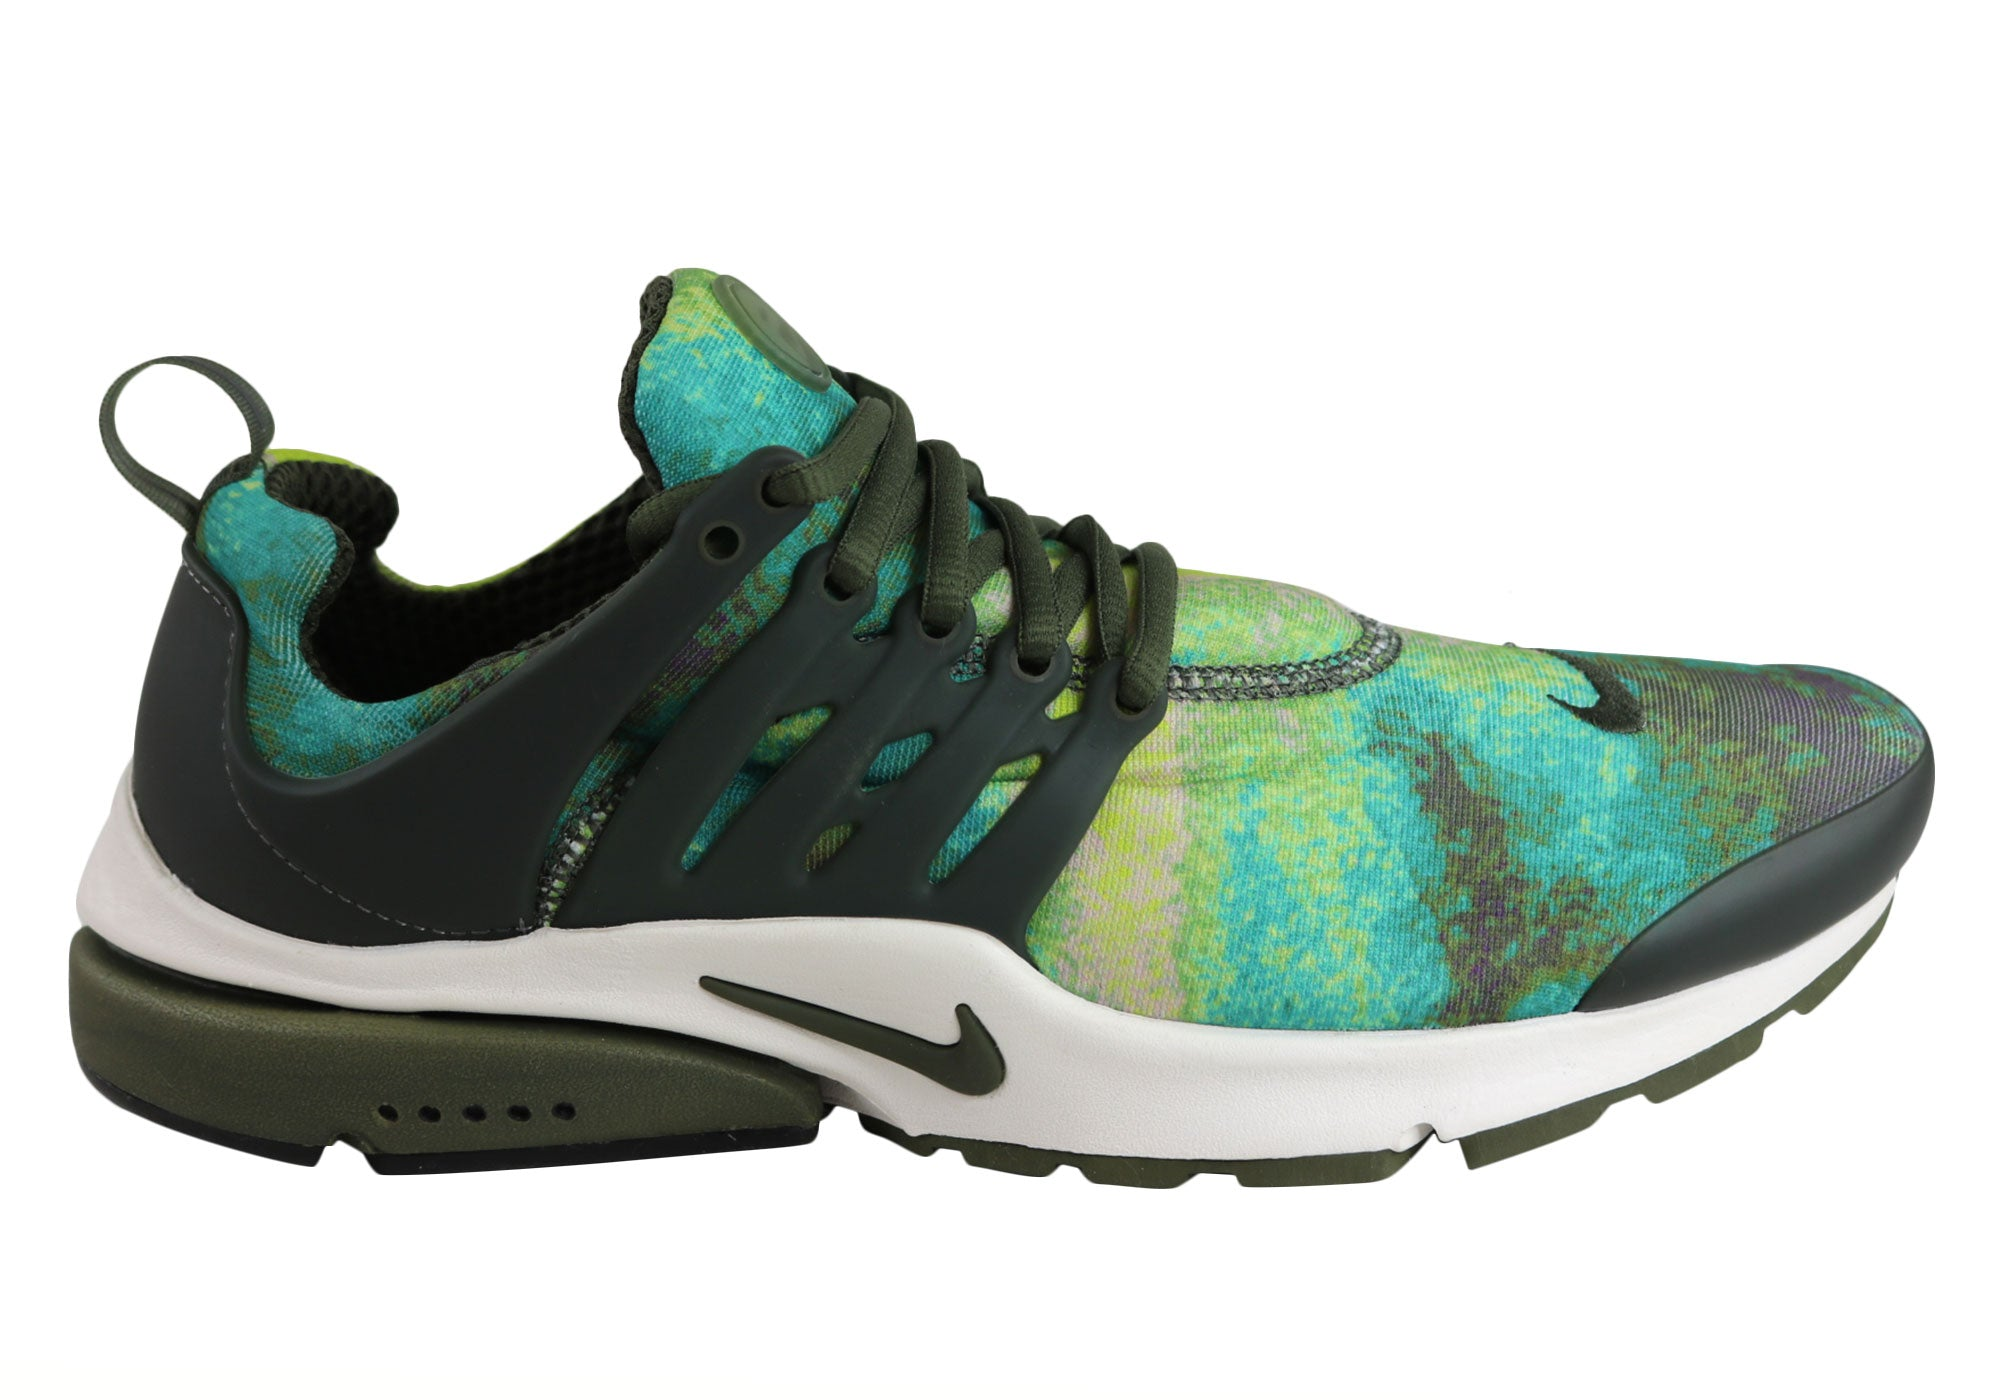 best service 263e7 cf857 New Mens Nike Air Presto Gpx Comfortable Running Shoes   eBay